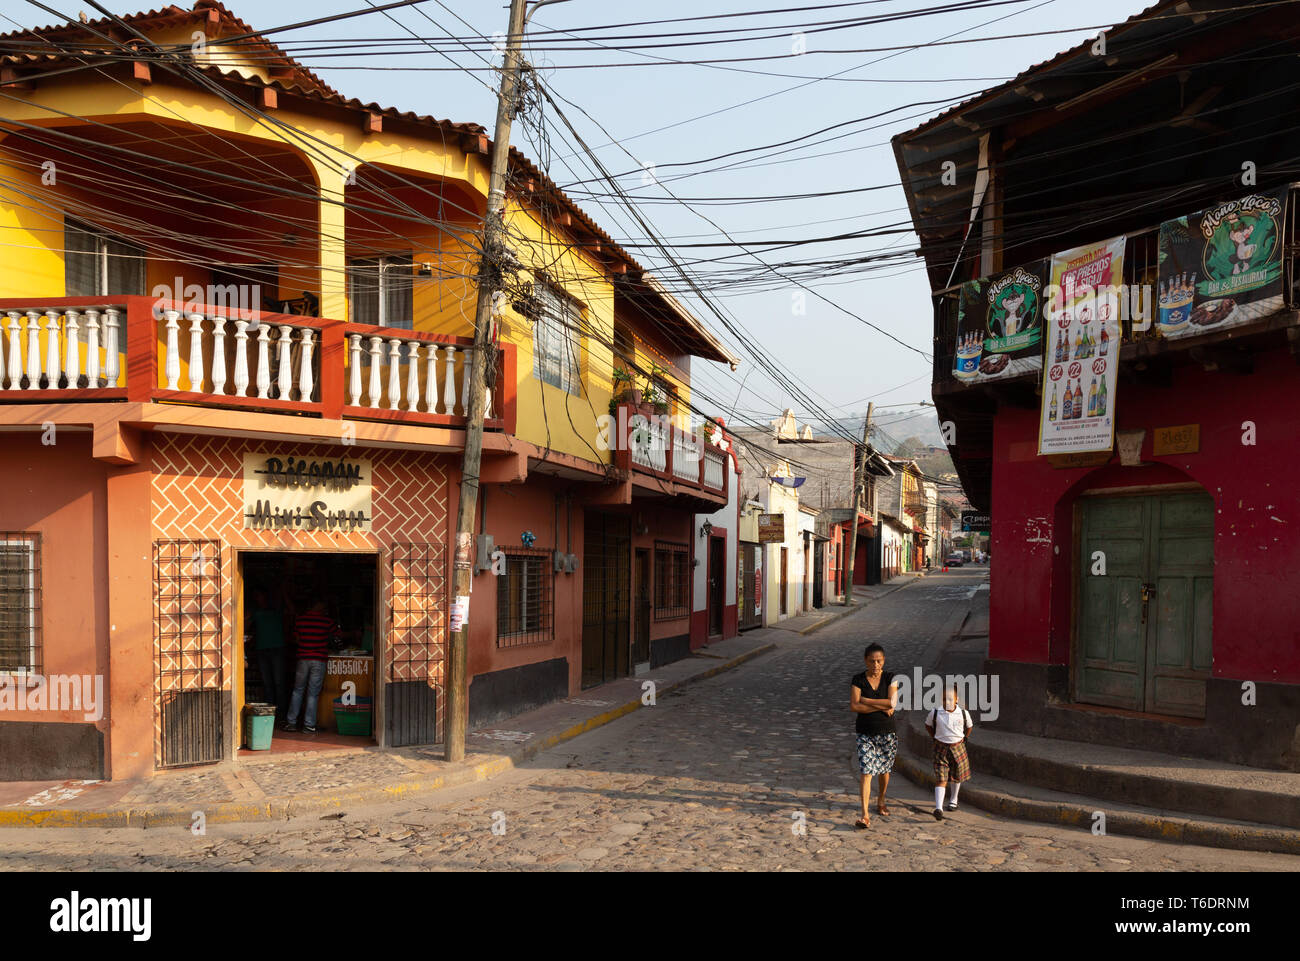 A mother walking her child to school - street scene in the  town of Copan Ruinas, Honduras, Central America - Stock Image